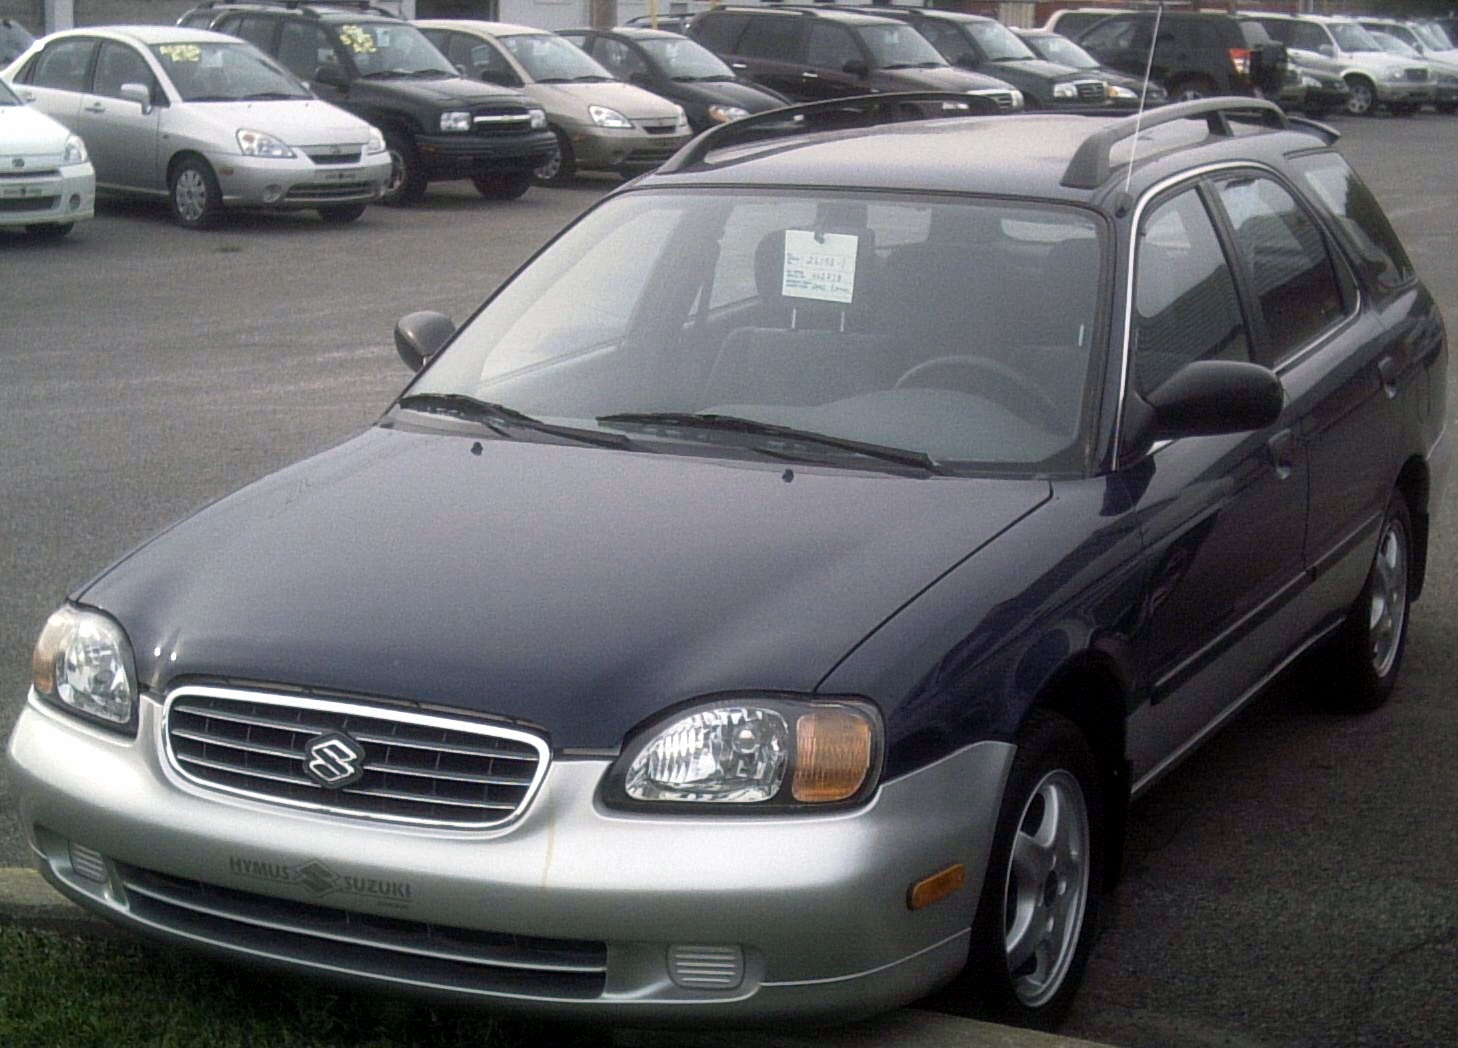 2002 suzuki esteem glx wagon 1 8l manual rh carspecs us Used 2002 Suzuki Esteem Recalls 1998 Suzuki Esteem Engine